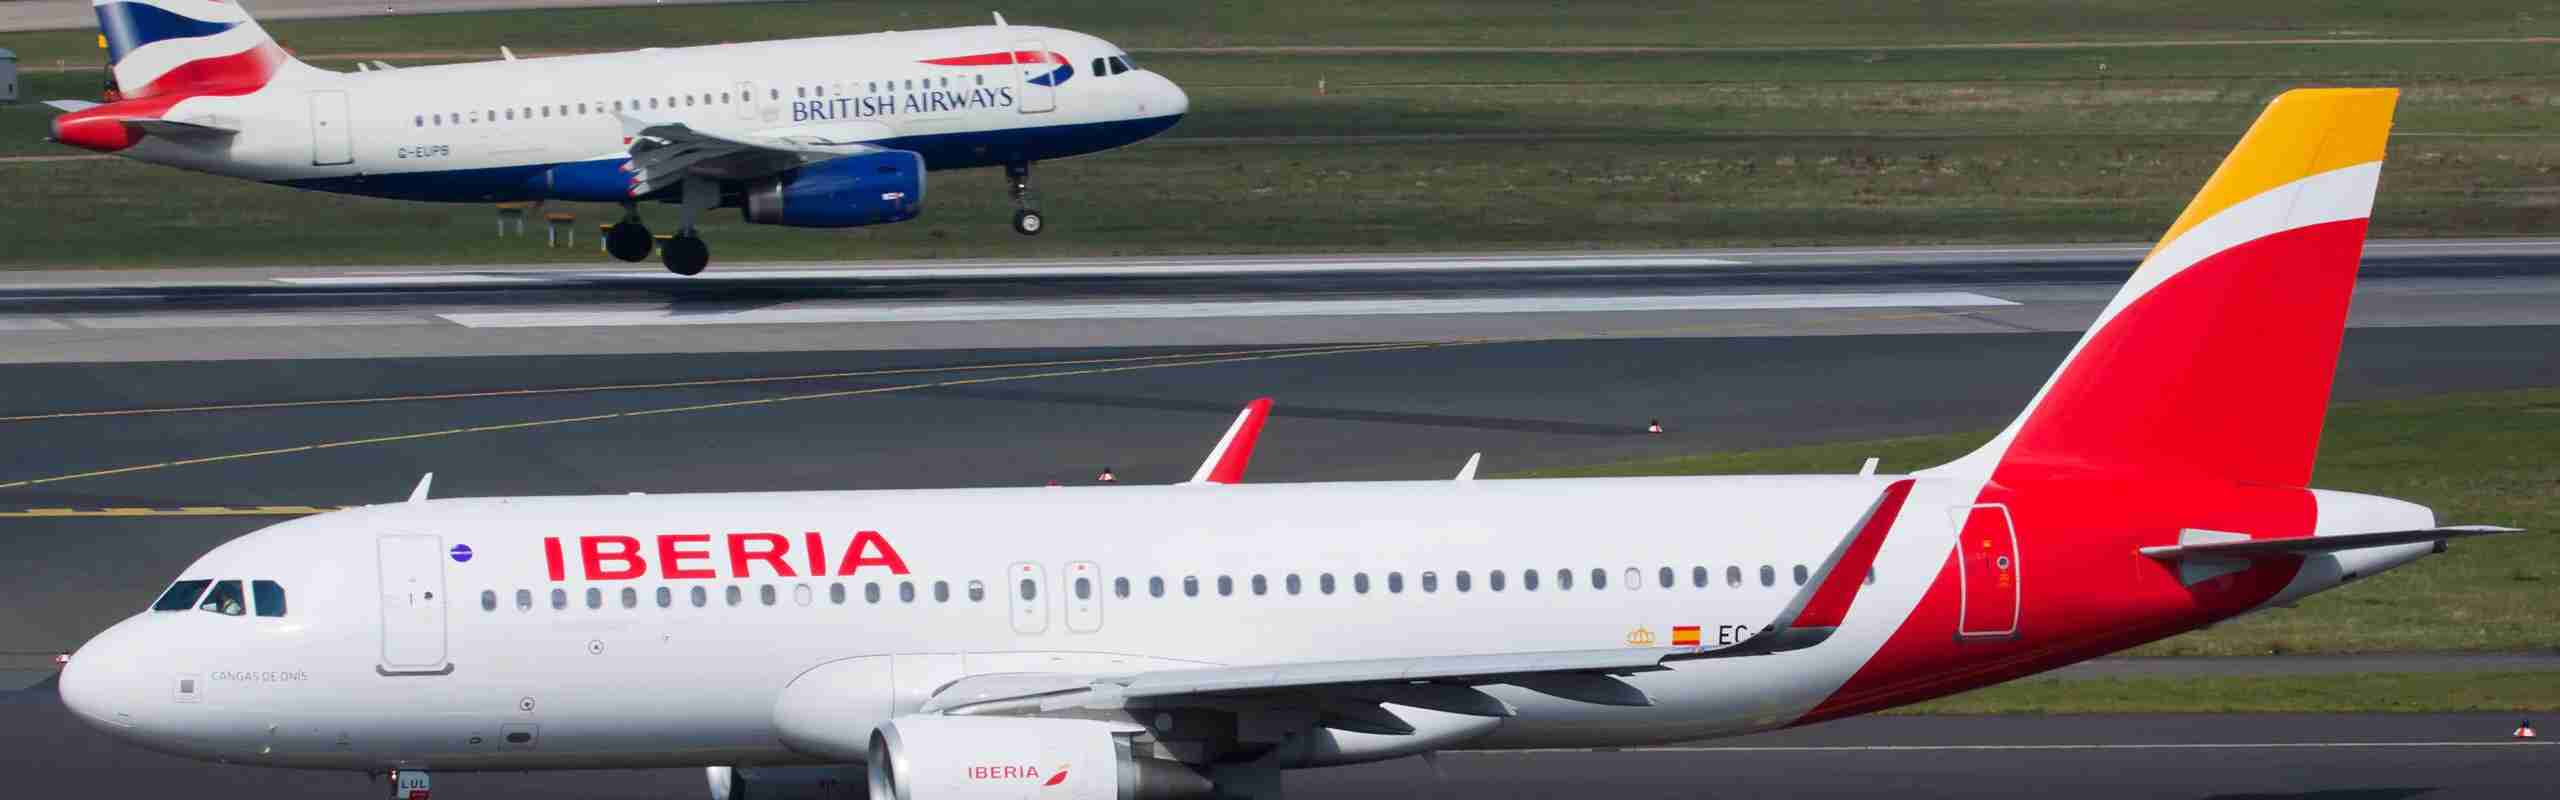 Iberia and British airways planes on the runway